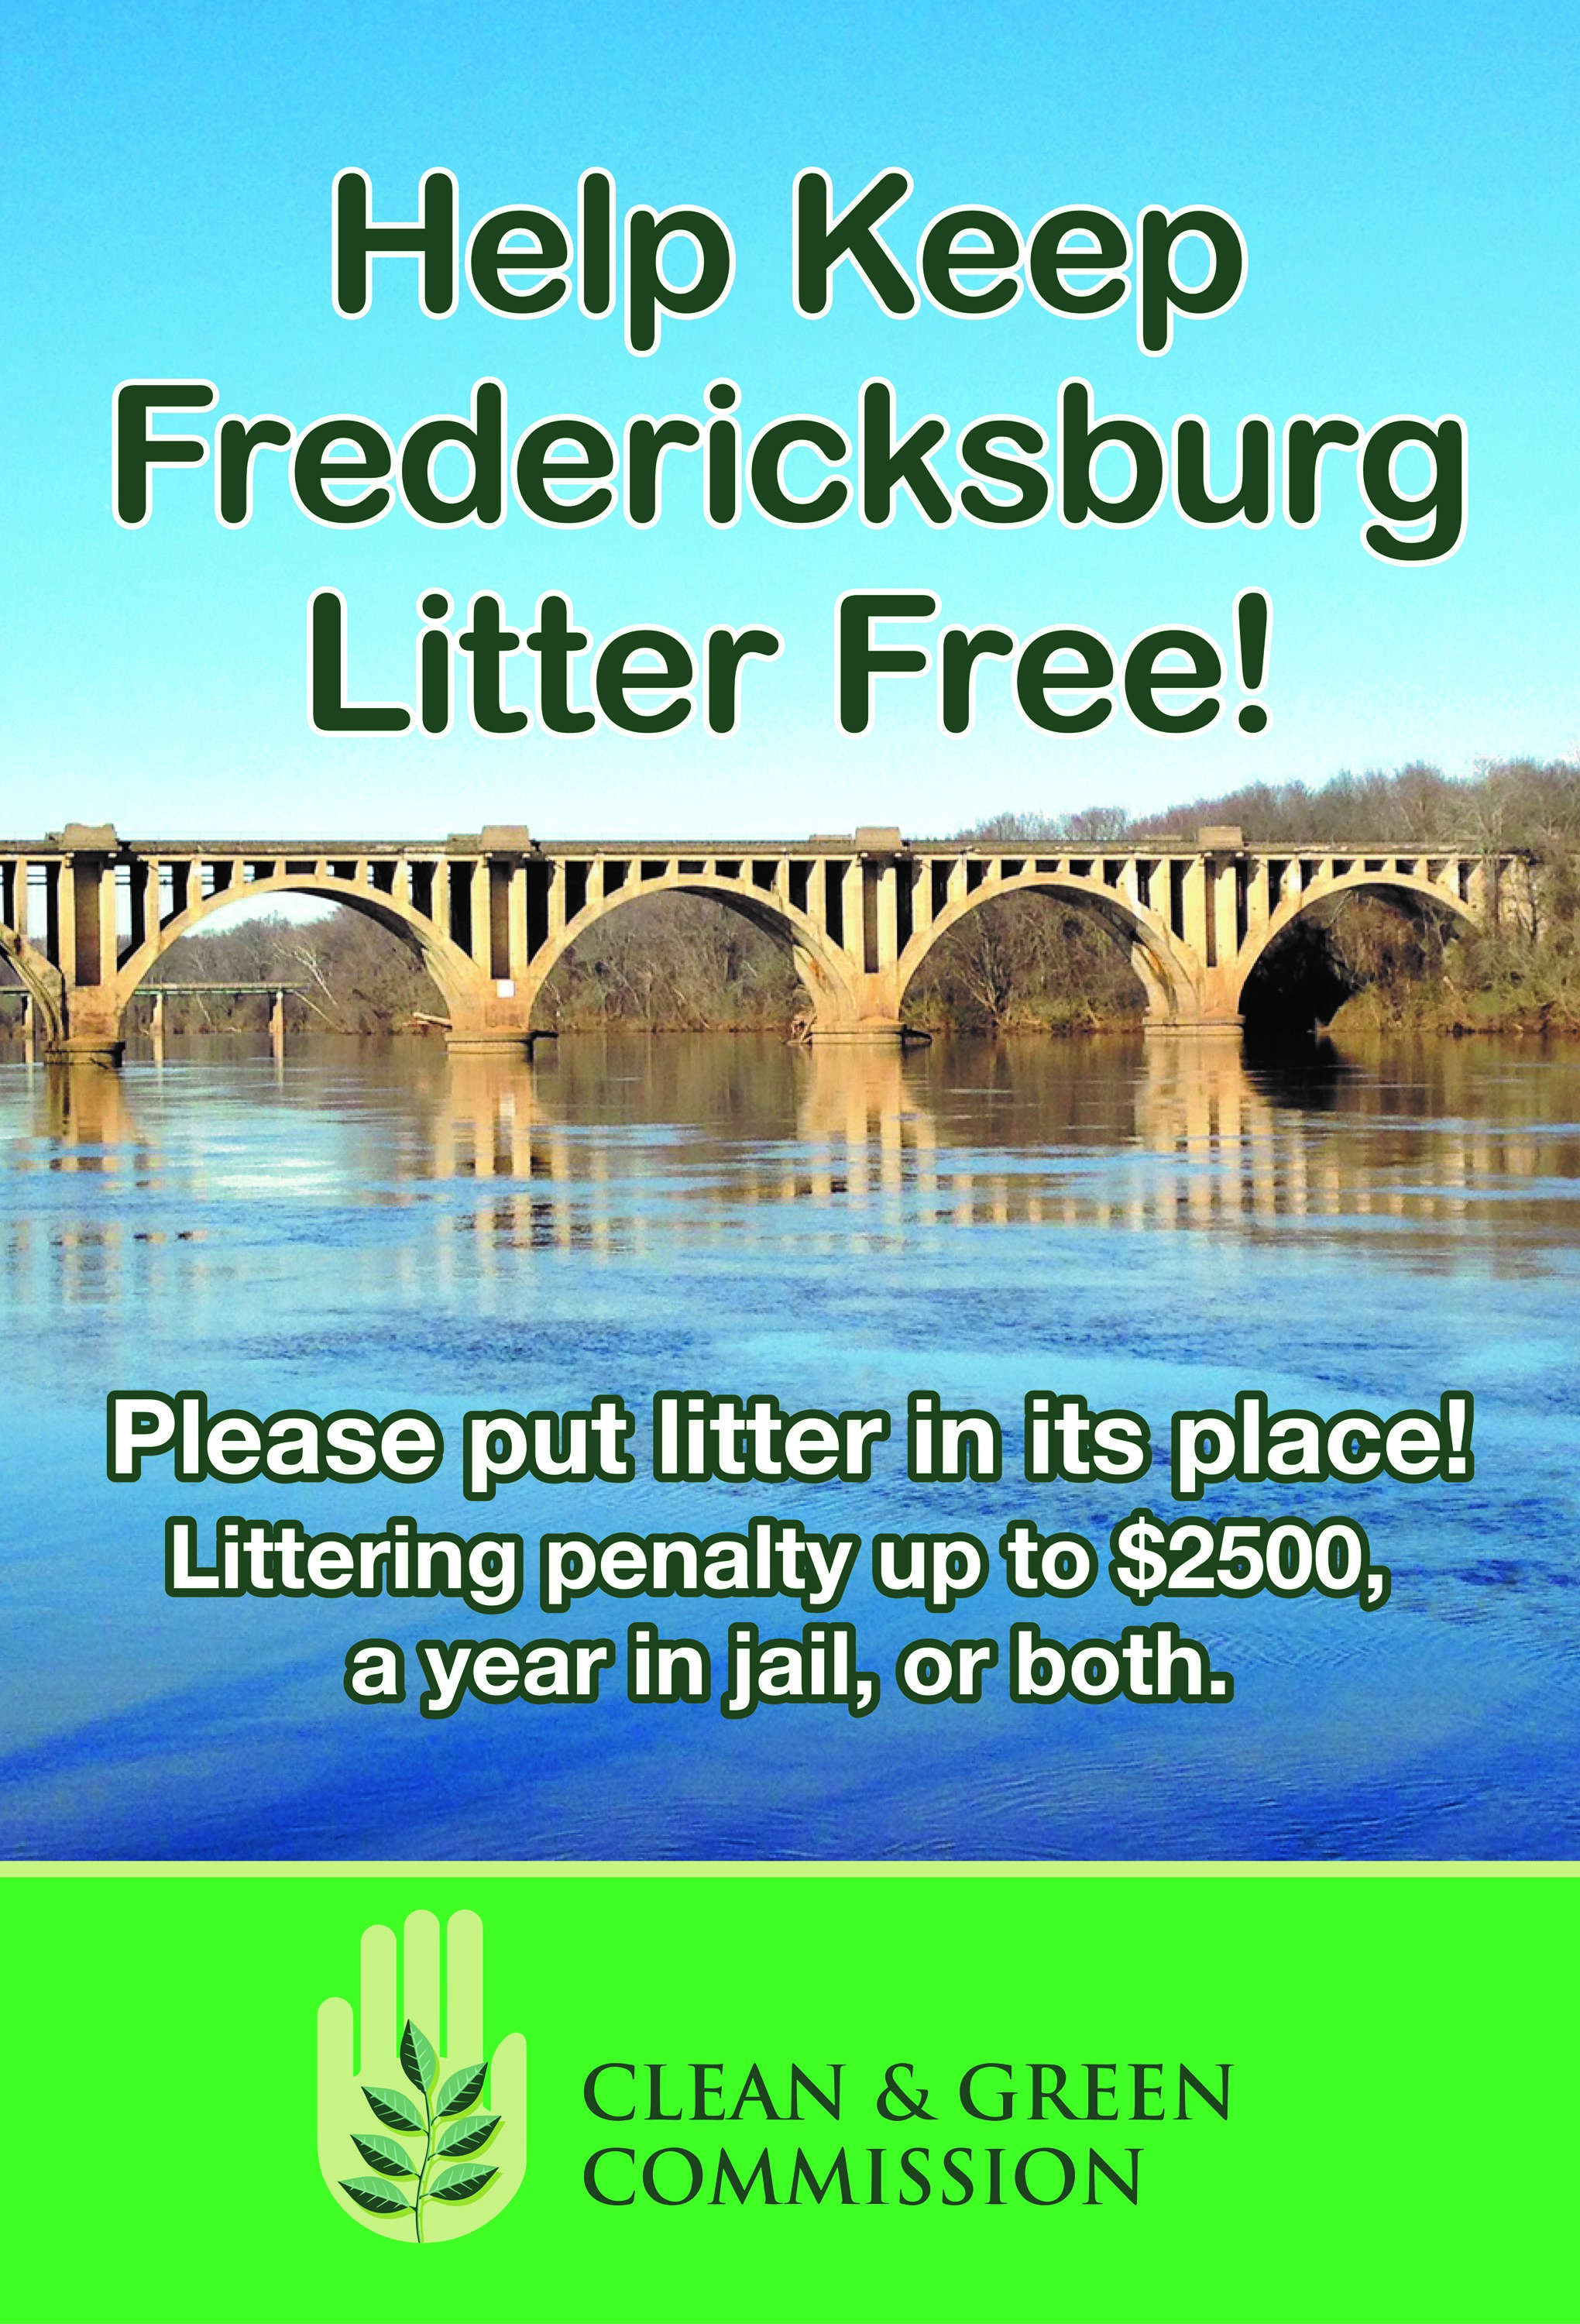 Keep Fredericksburg Litter free flyer